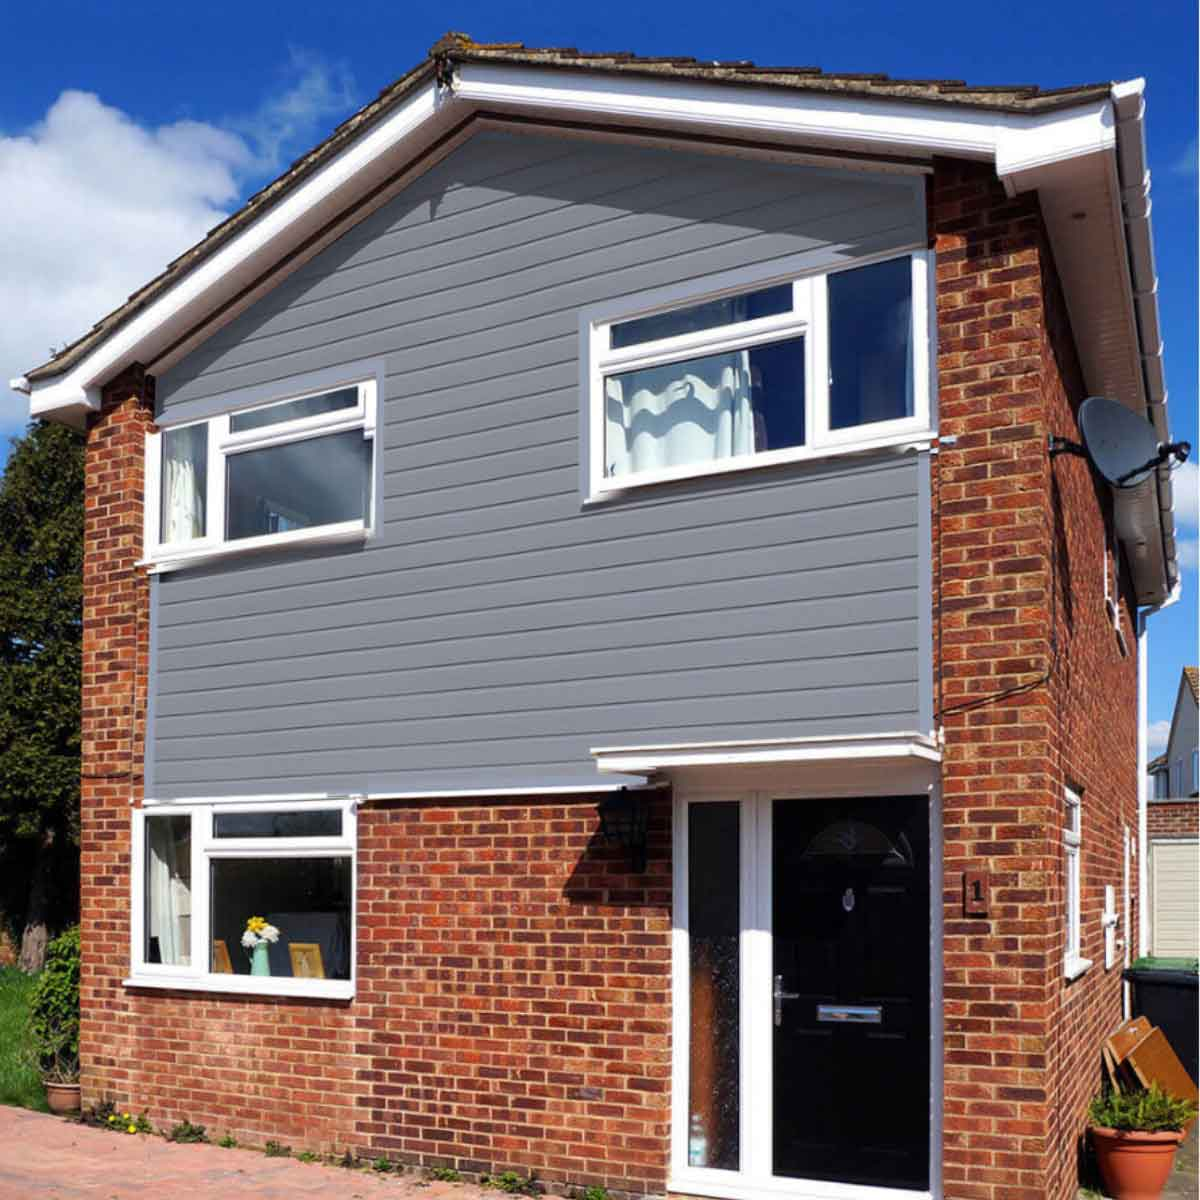 Blue cladding that goes well with white PVC windows